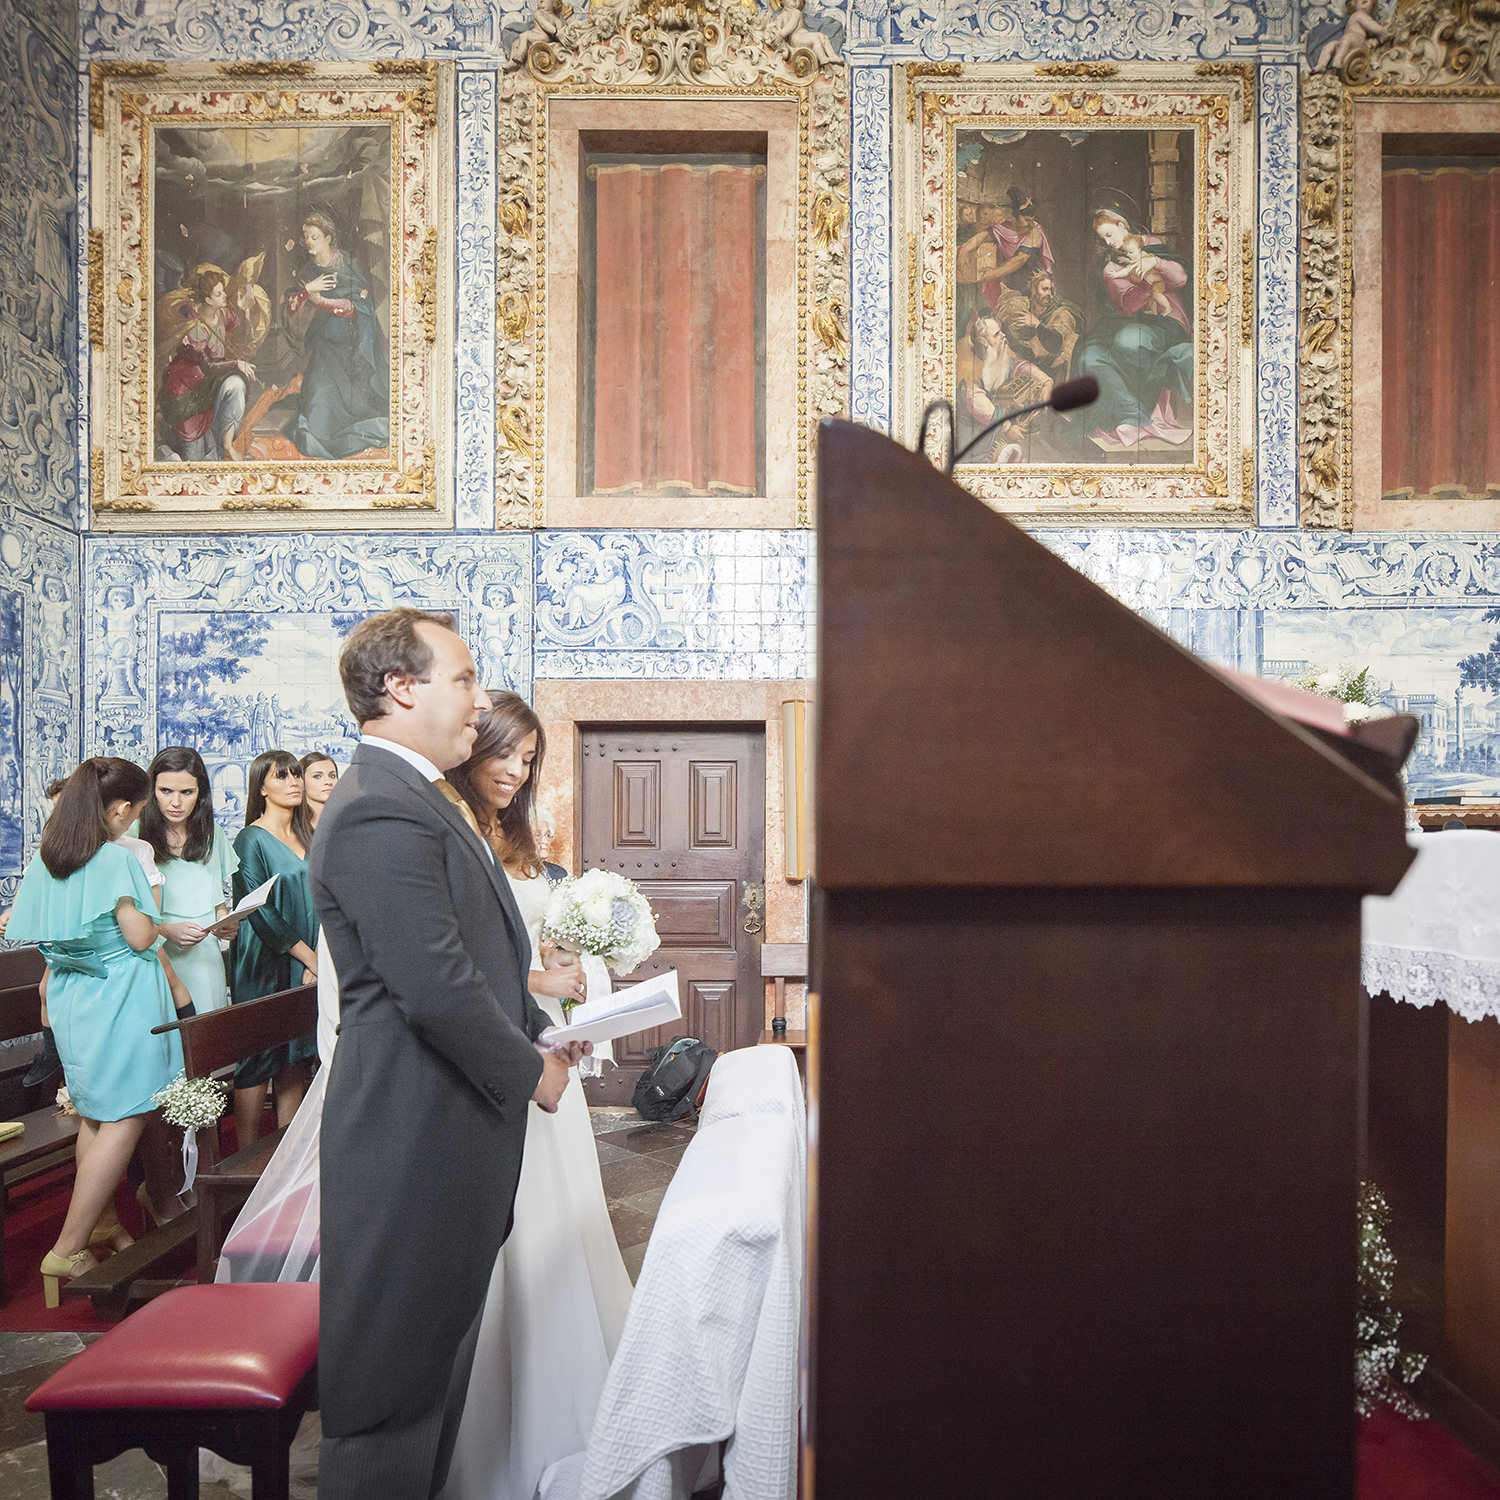 areias-seixo-wedding-photographer-terra-fotografia-070.jpg